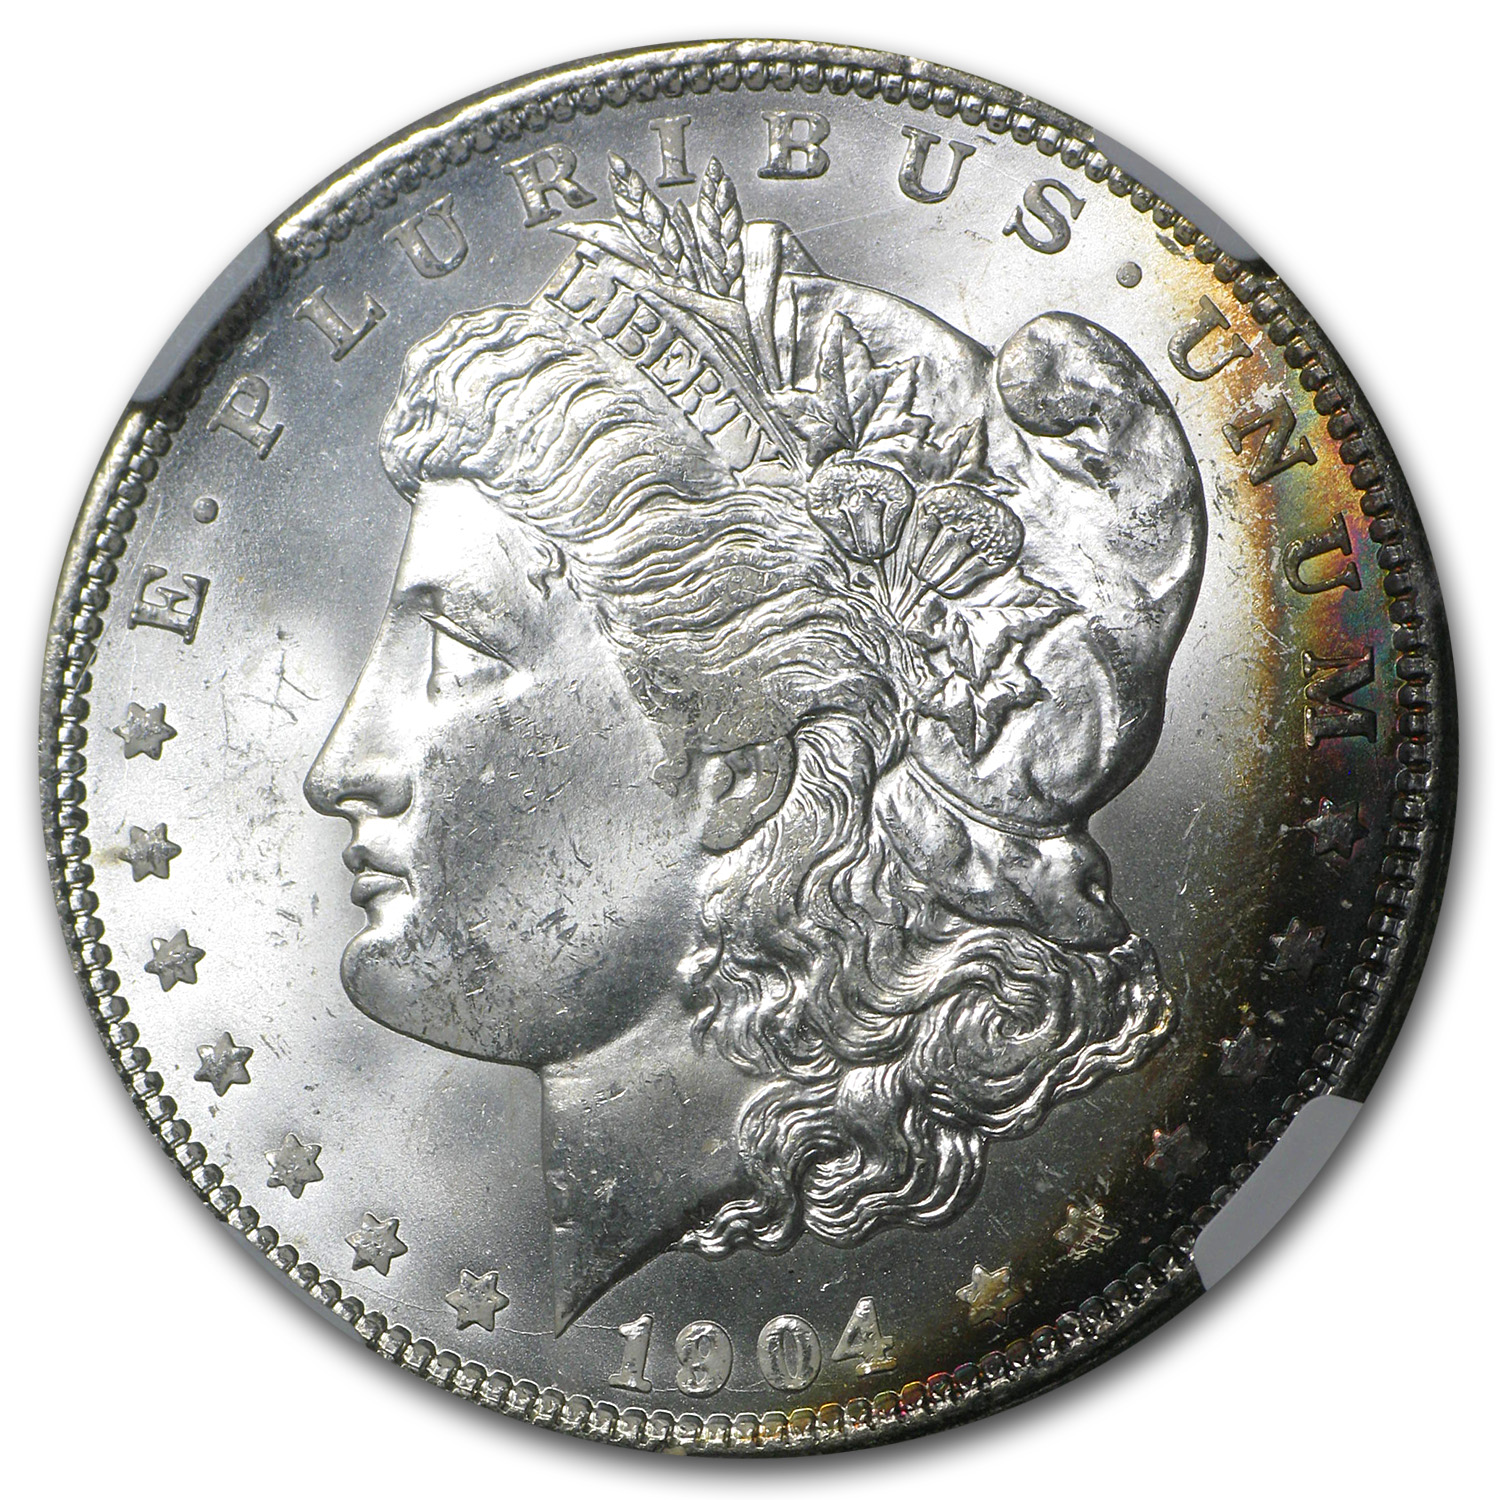 1904-O Morgan Dollar MS-64* Star NGC (Beautiful Obv Toning, CAC)